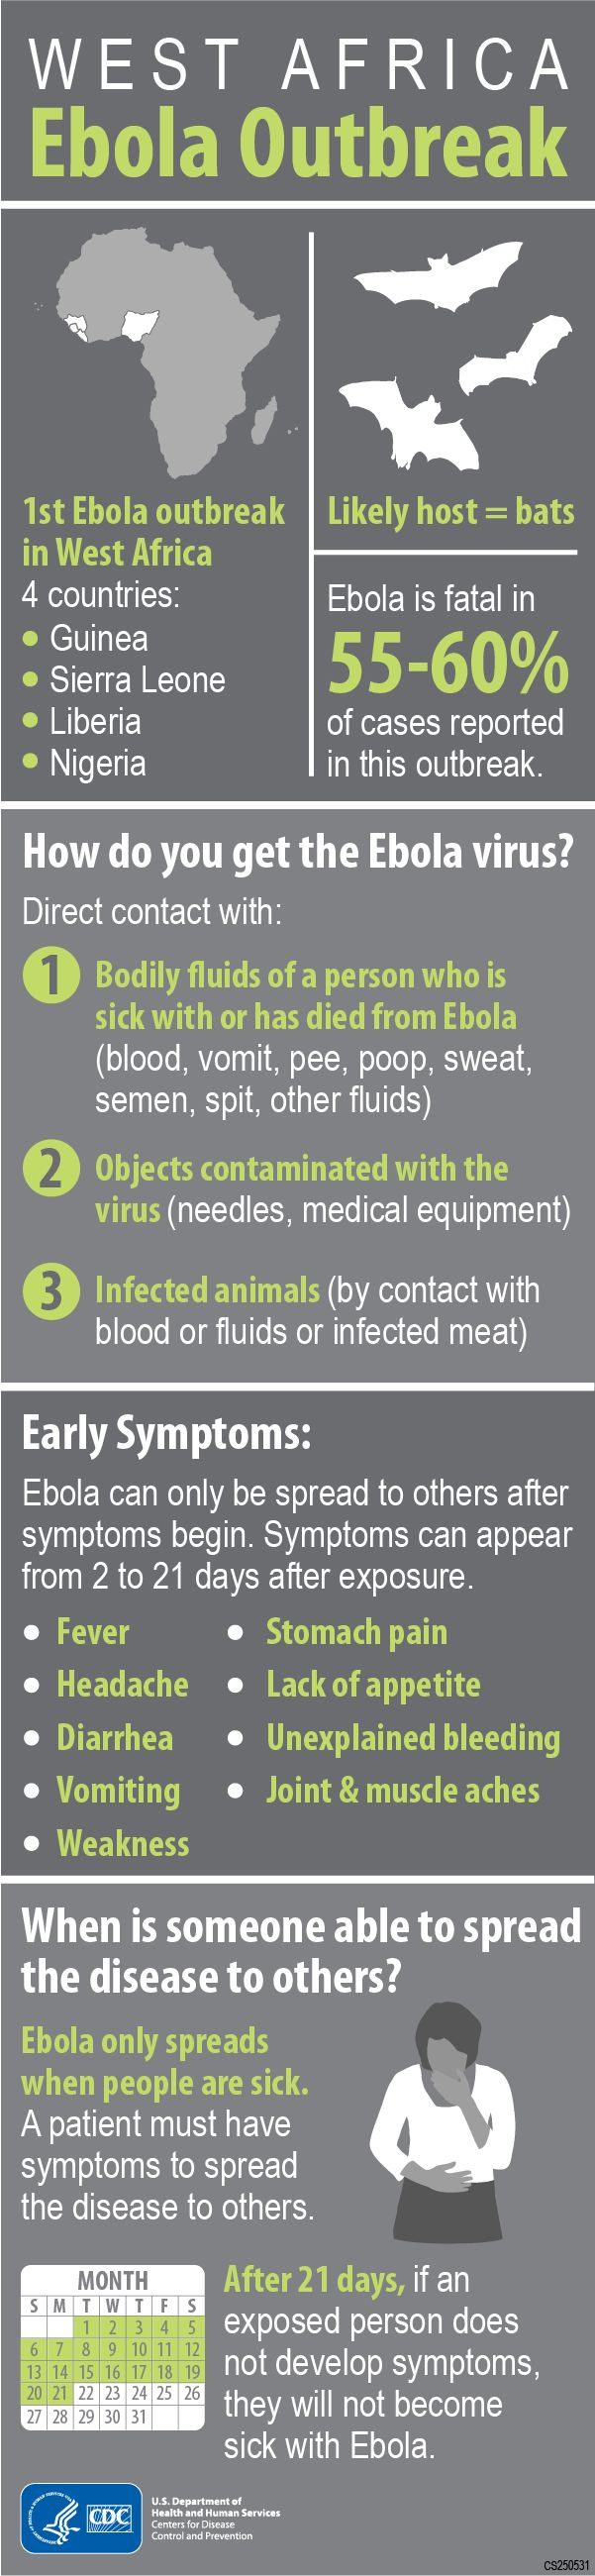 This is the first #Ebola outbreak in West Africa, impacting Guinea, Sierra Leone, Liberia, and Nigeria. Get the facts from our Ebola infographic.